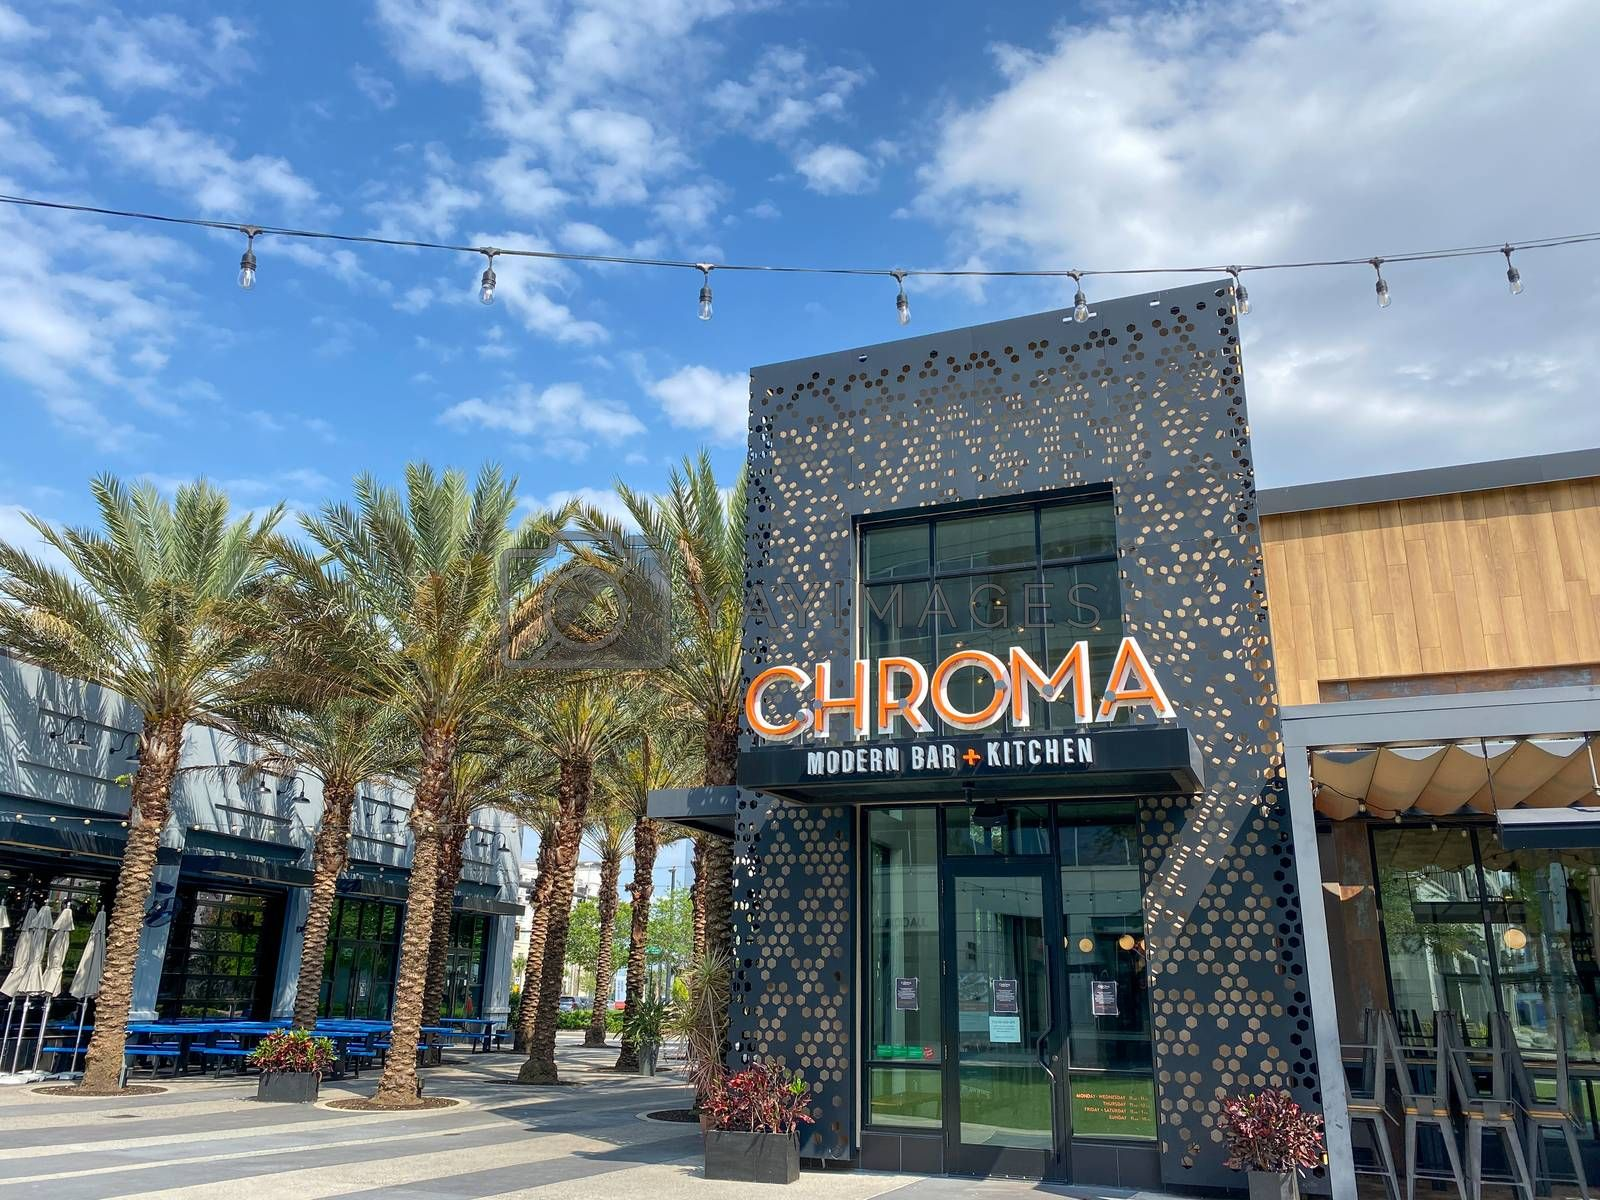 The exterior of the small plate modern restaurant and bar Chroma by Joni Hanebutt